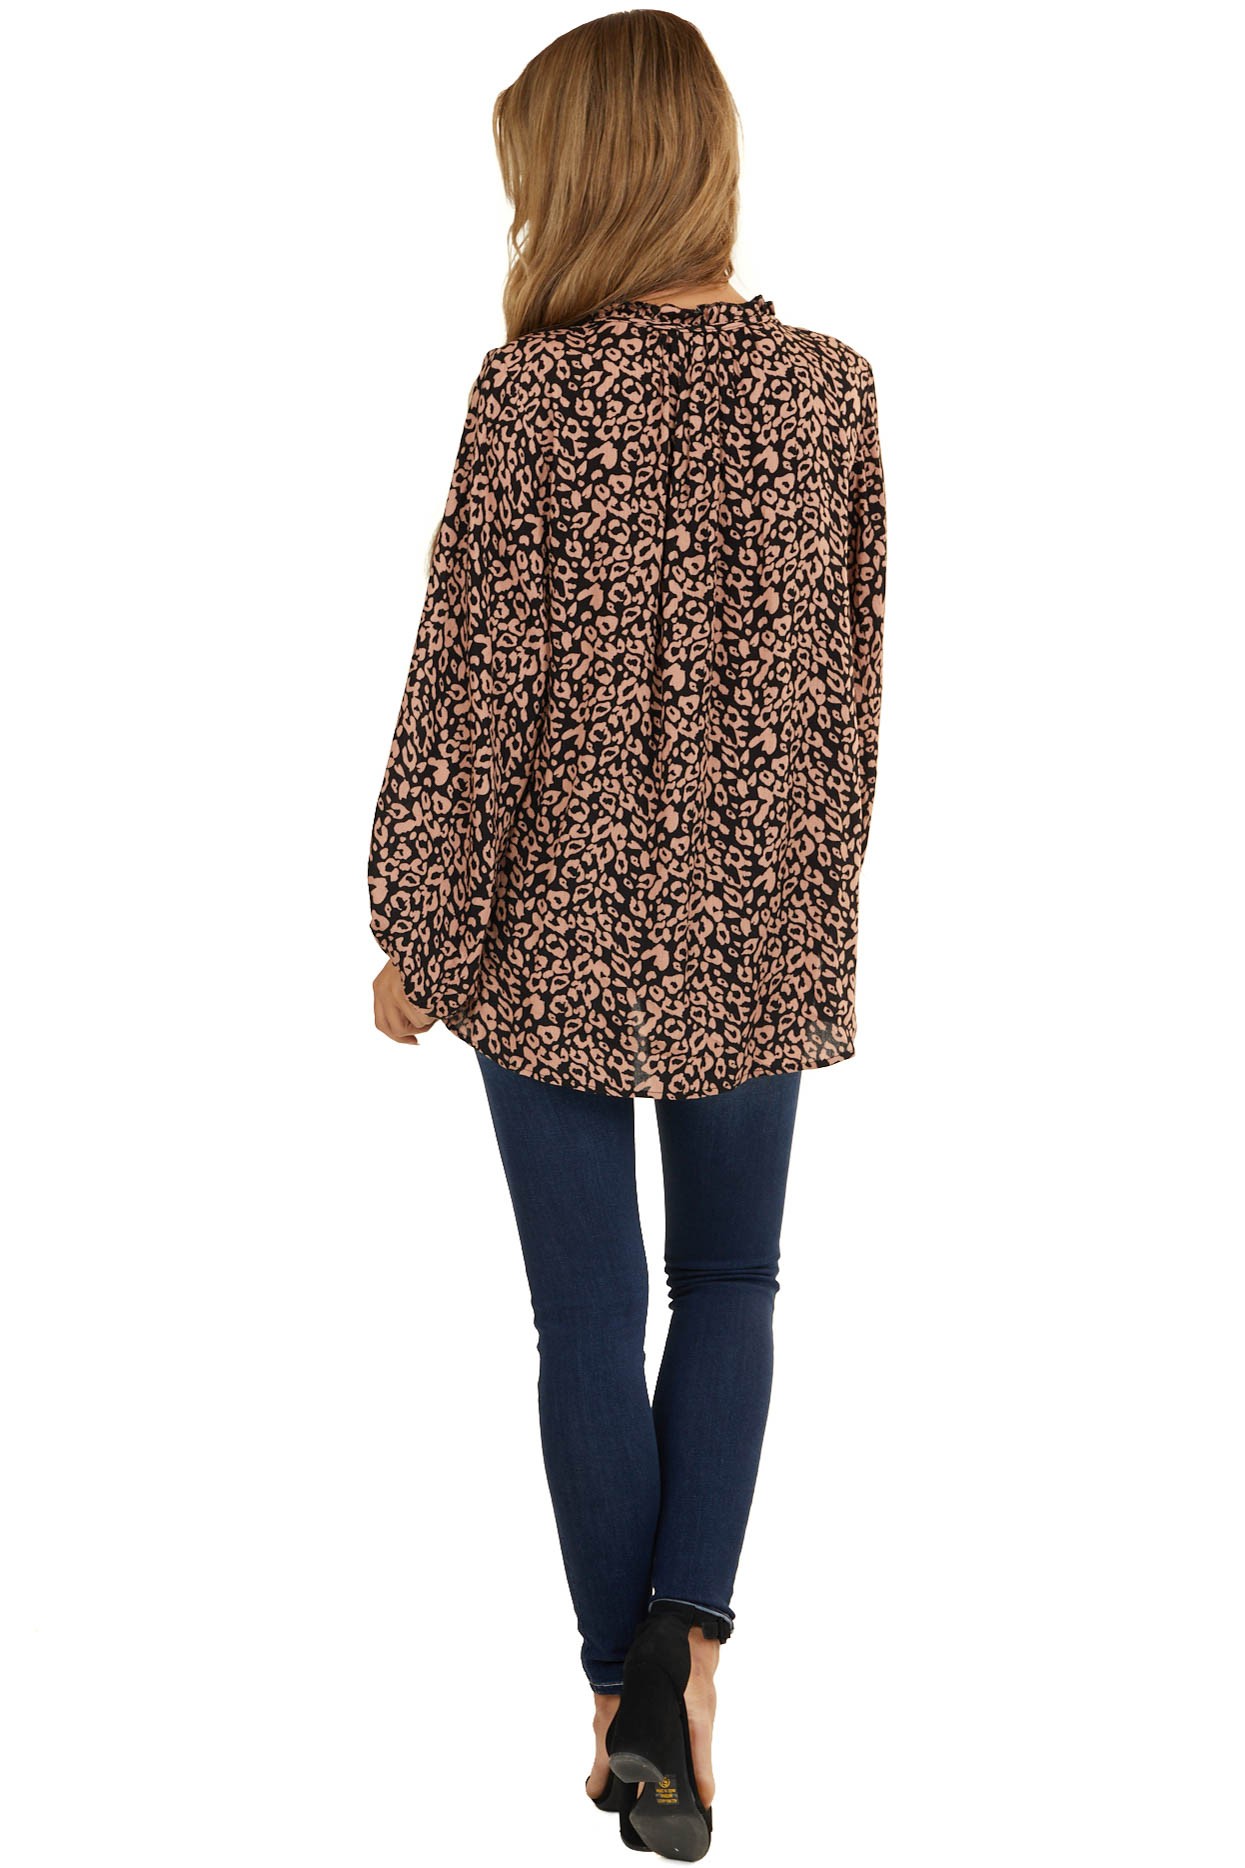 Latte Leopard Long Sleeve Top with Front Keyhole Detail